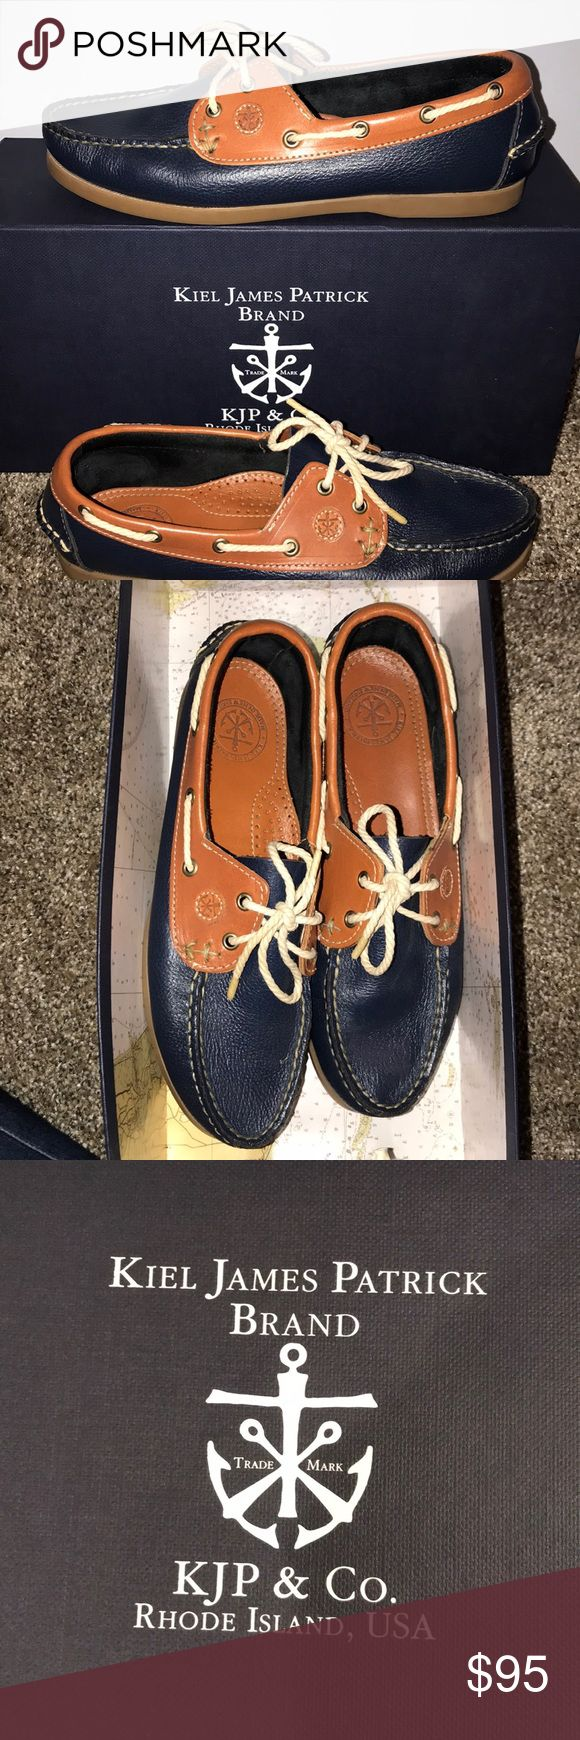 KJP women's navy blue boat shoes Super comfortable navy blue boat shoes by Kiel James Patrick. Worn only once. Perfect for spring and summer outfits KJP Shoes